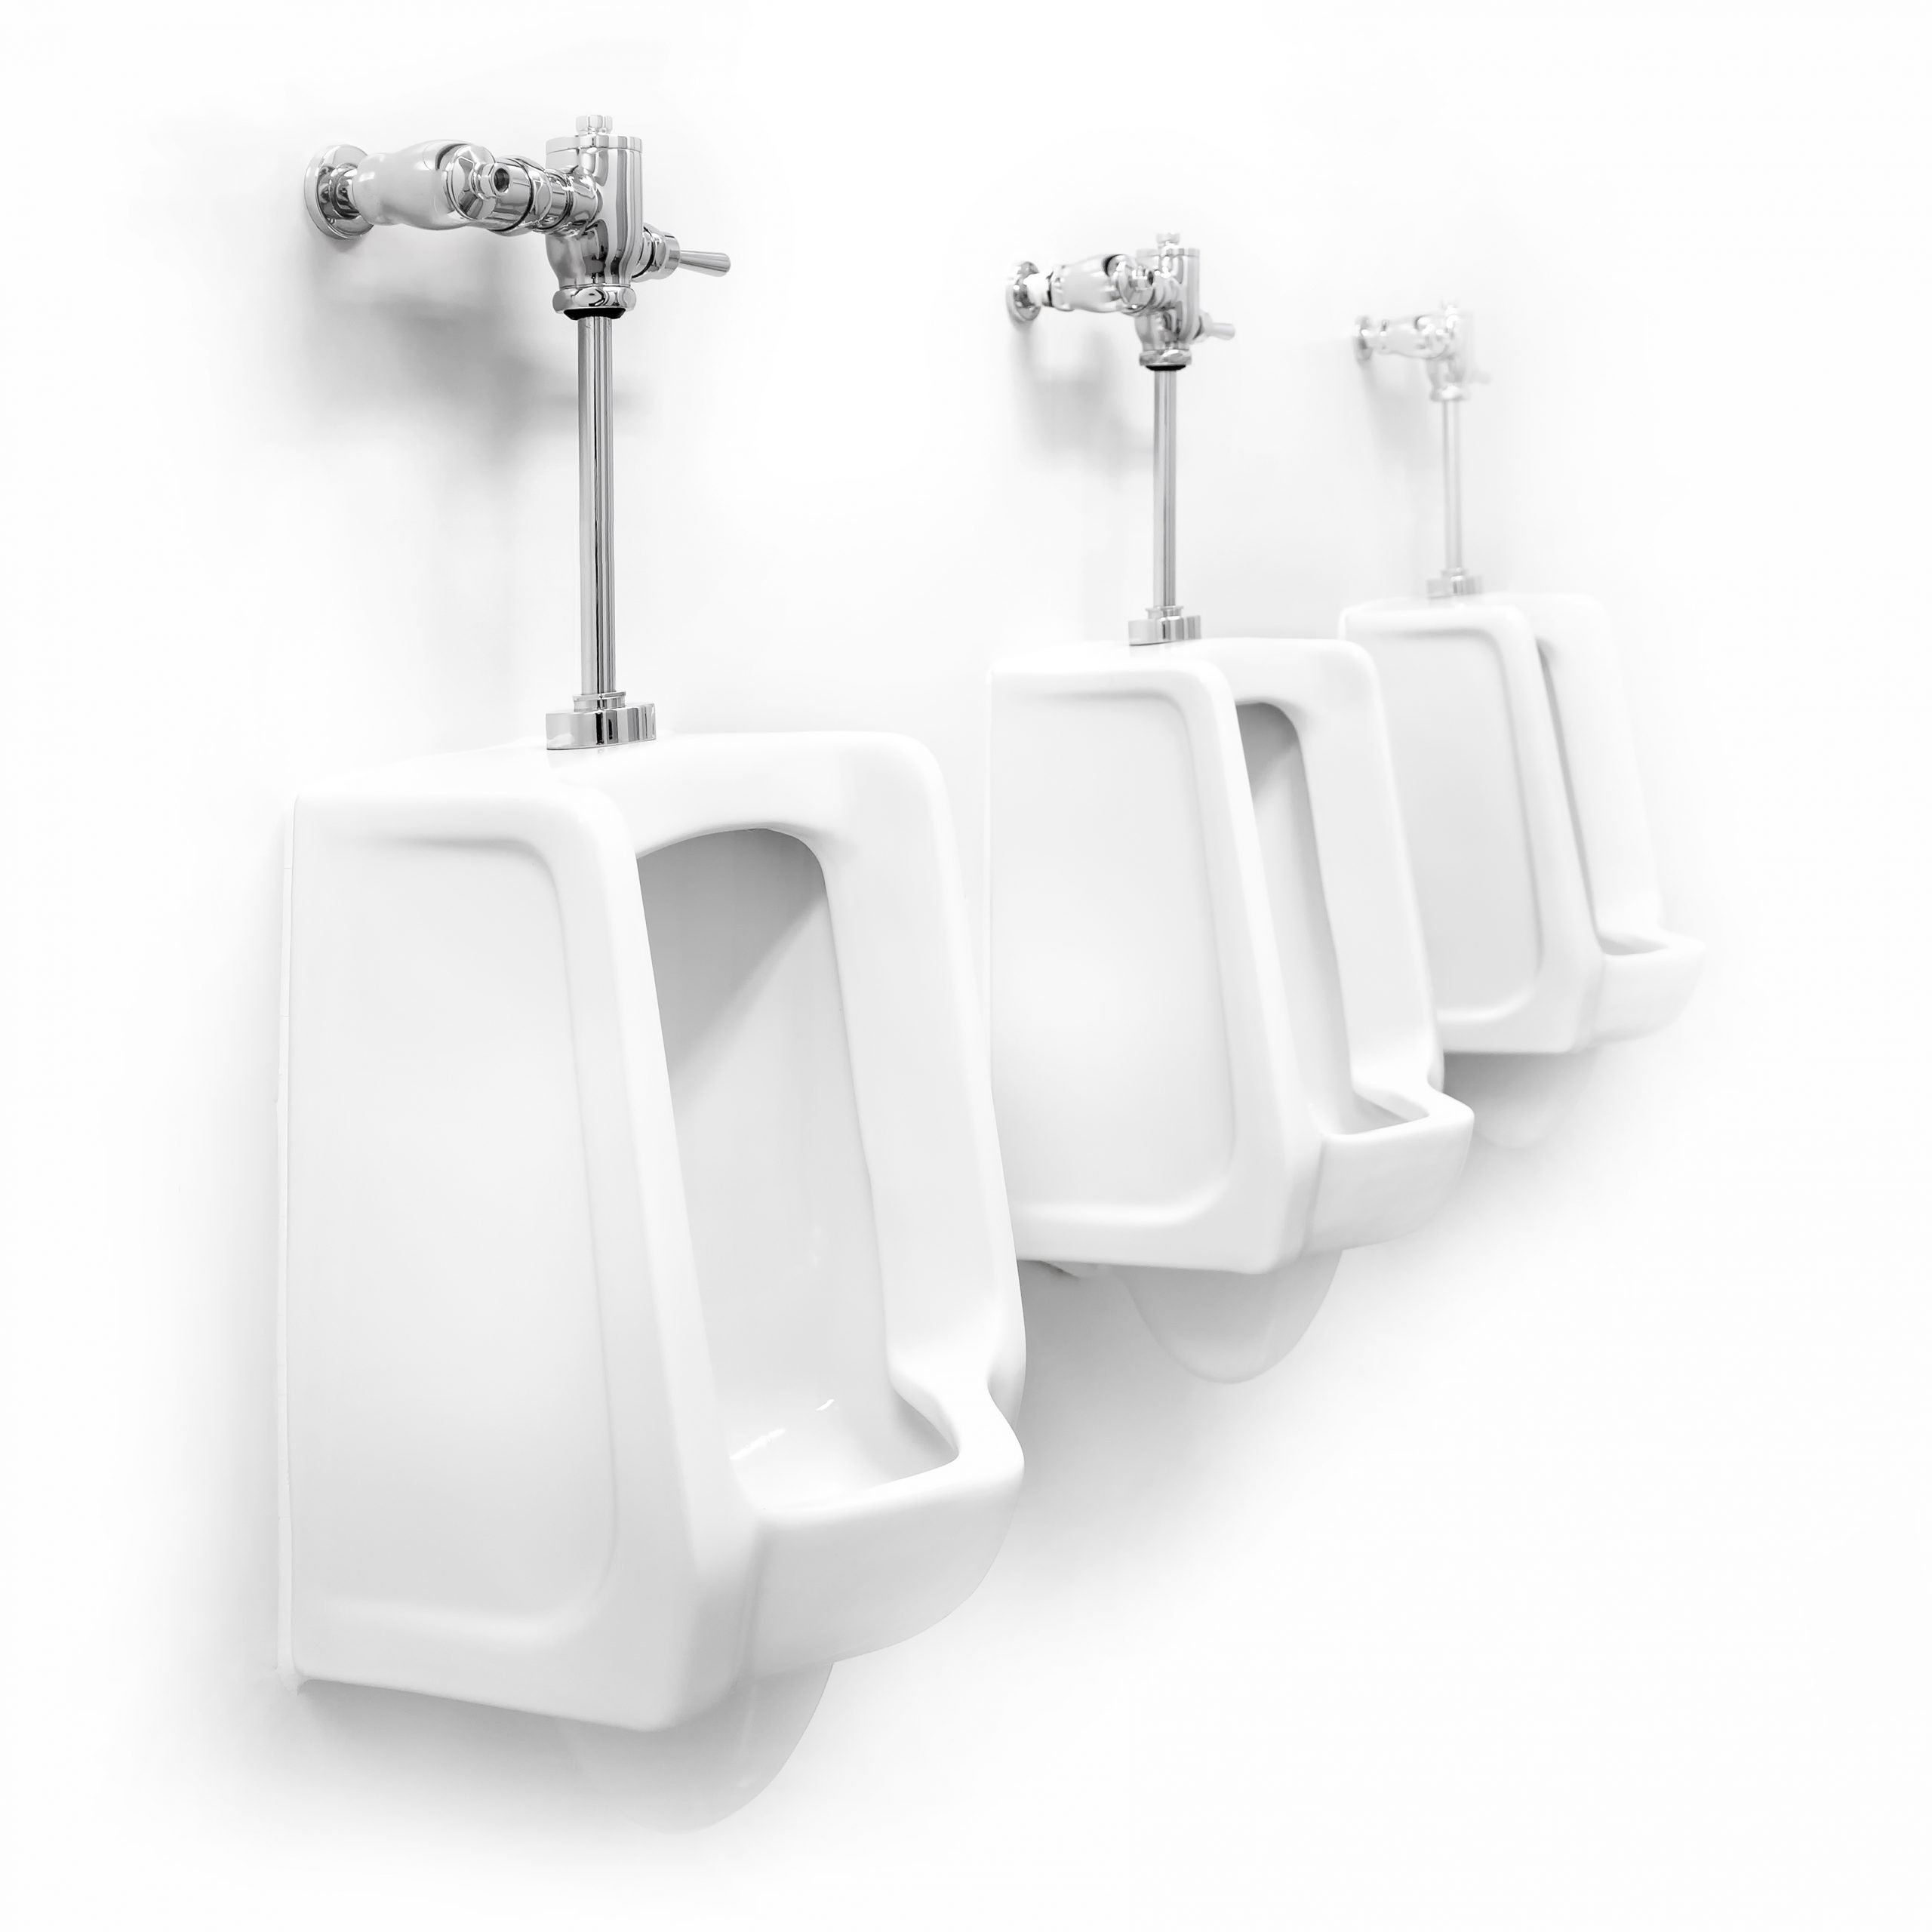 urinals flushed with rainwater